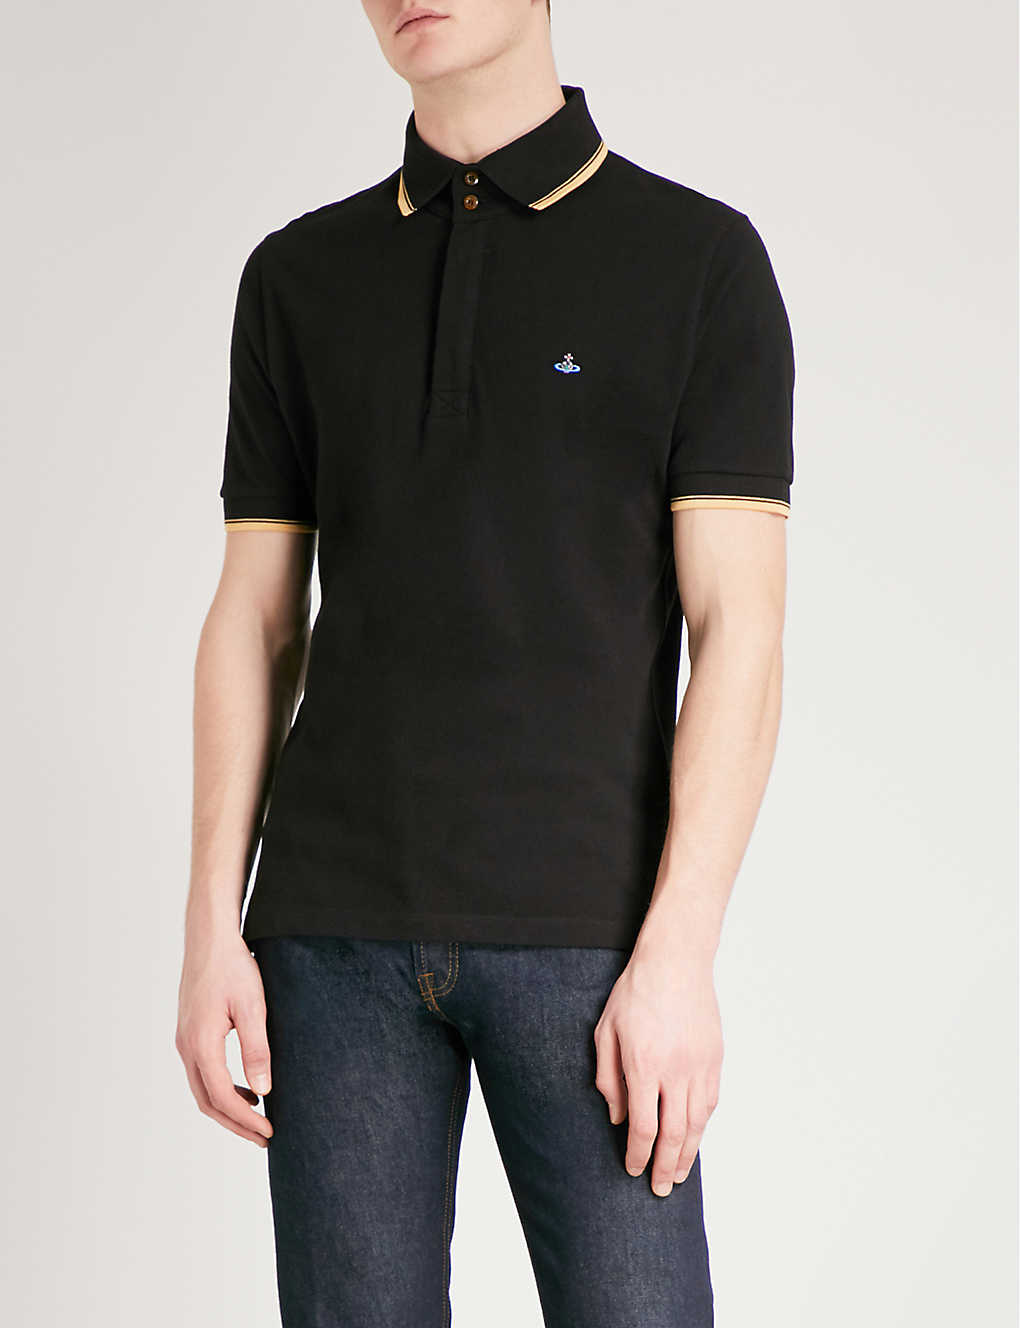 Mens Polo Shirts Without Buttons